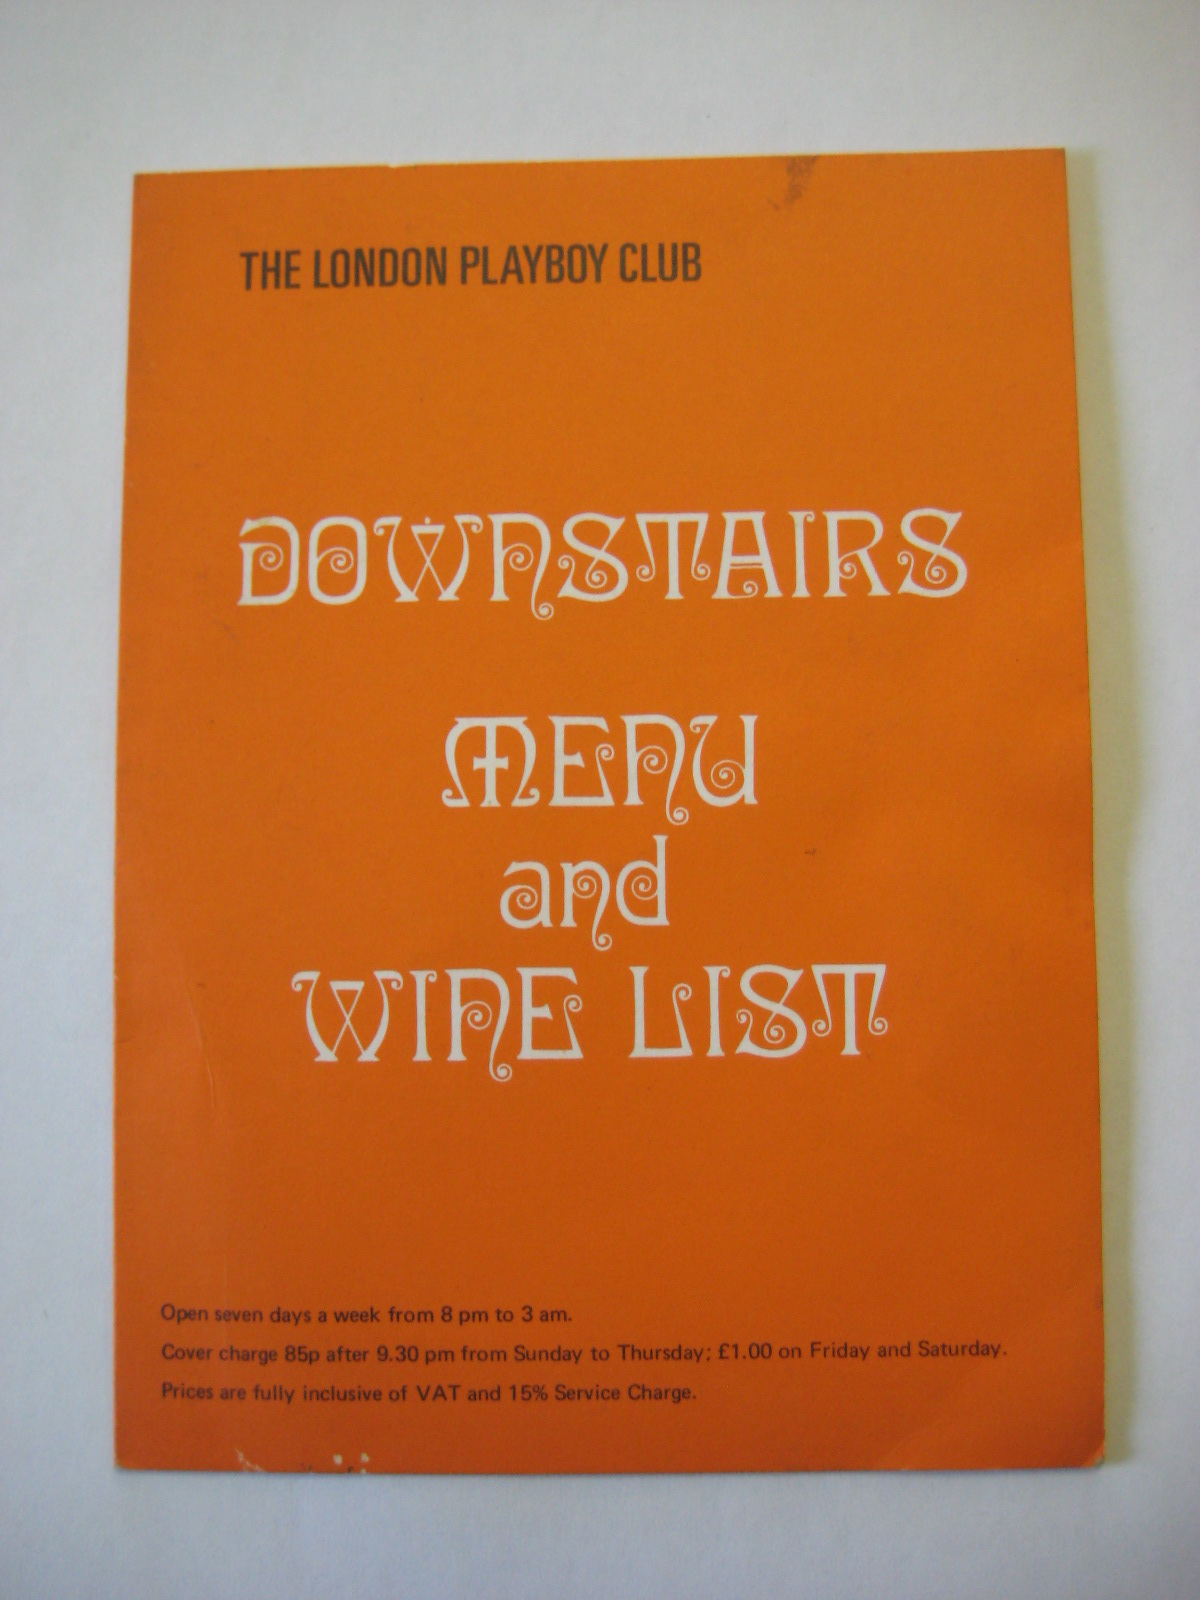 London Playboy Club Downstairs Menu 1975